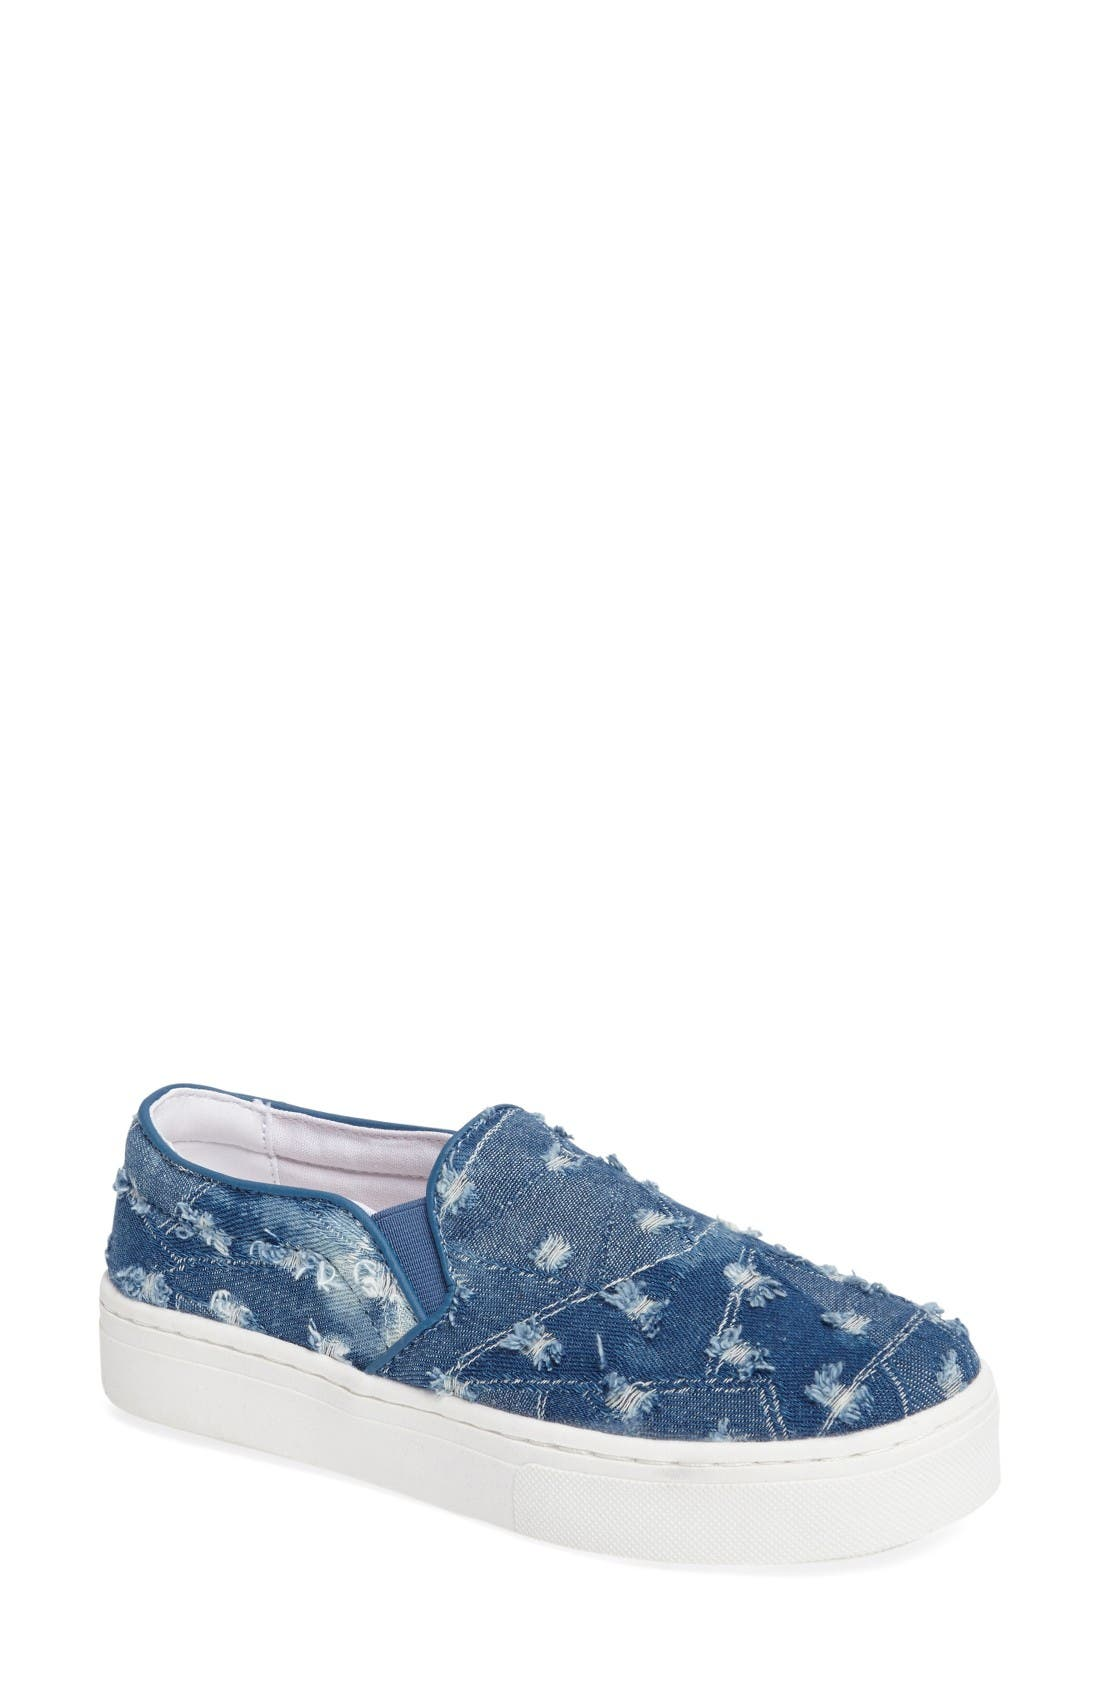 Sam Edelman Lacey Slip-On Platform Sneaker (Women)